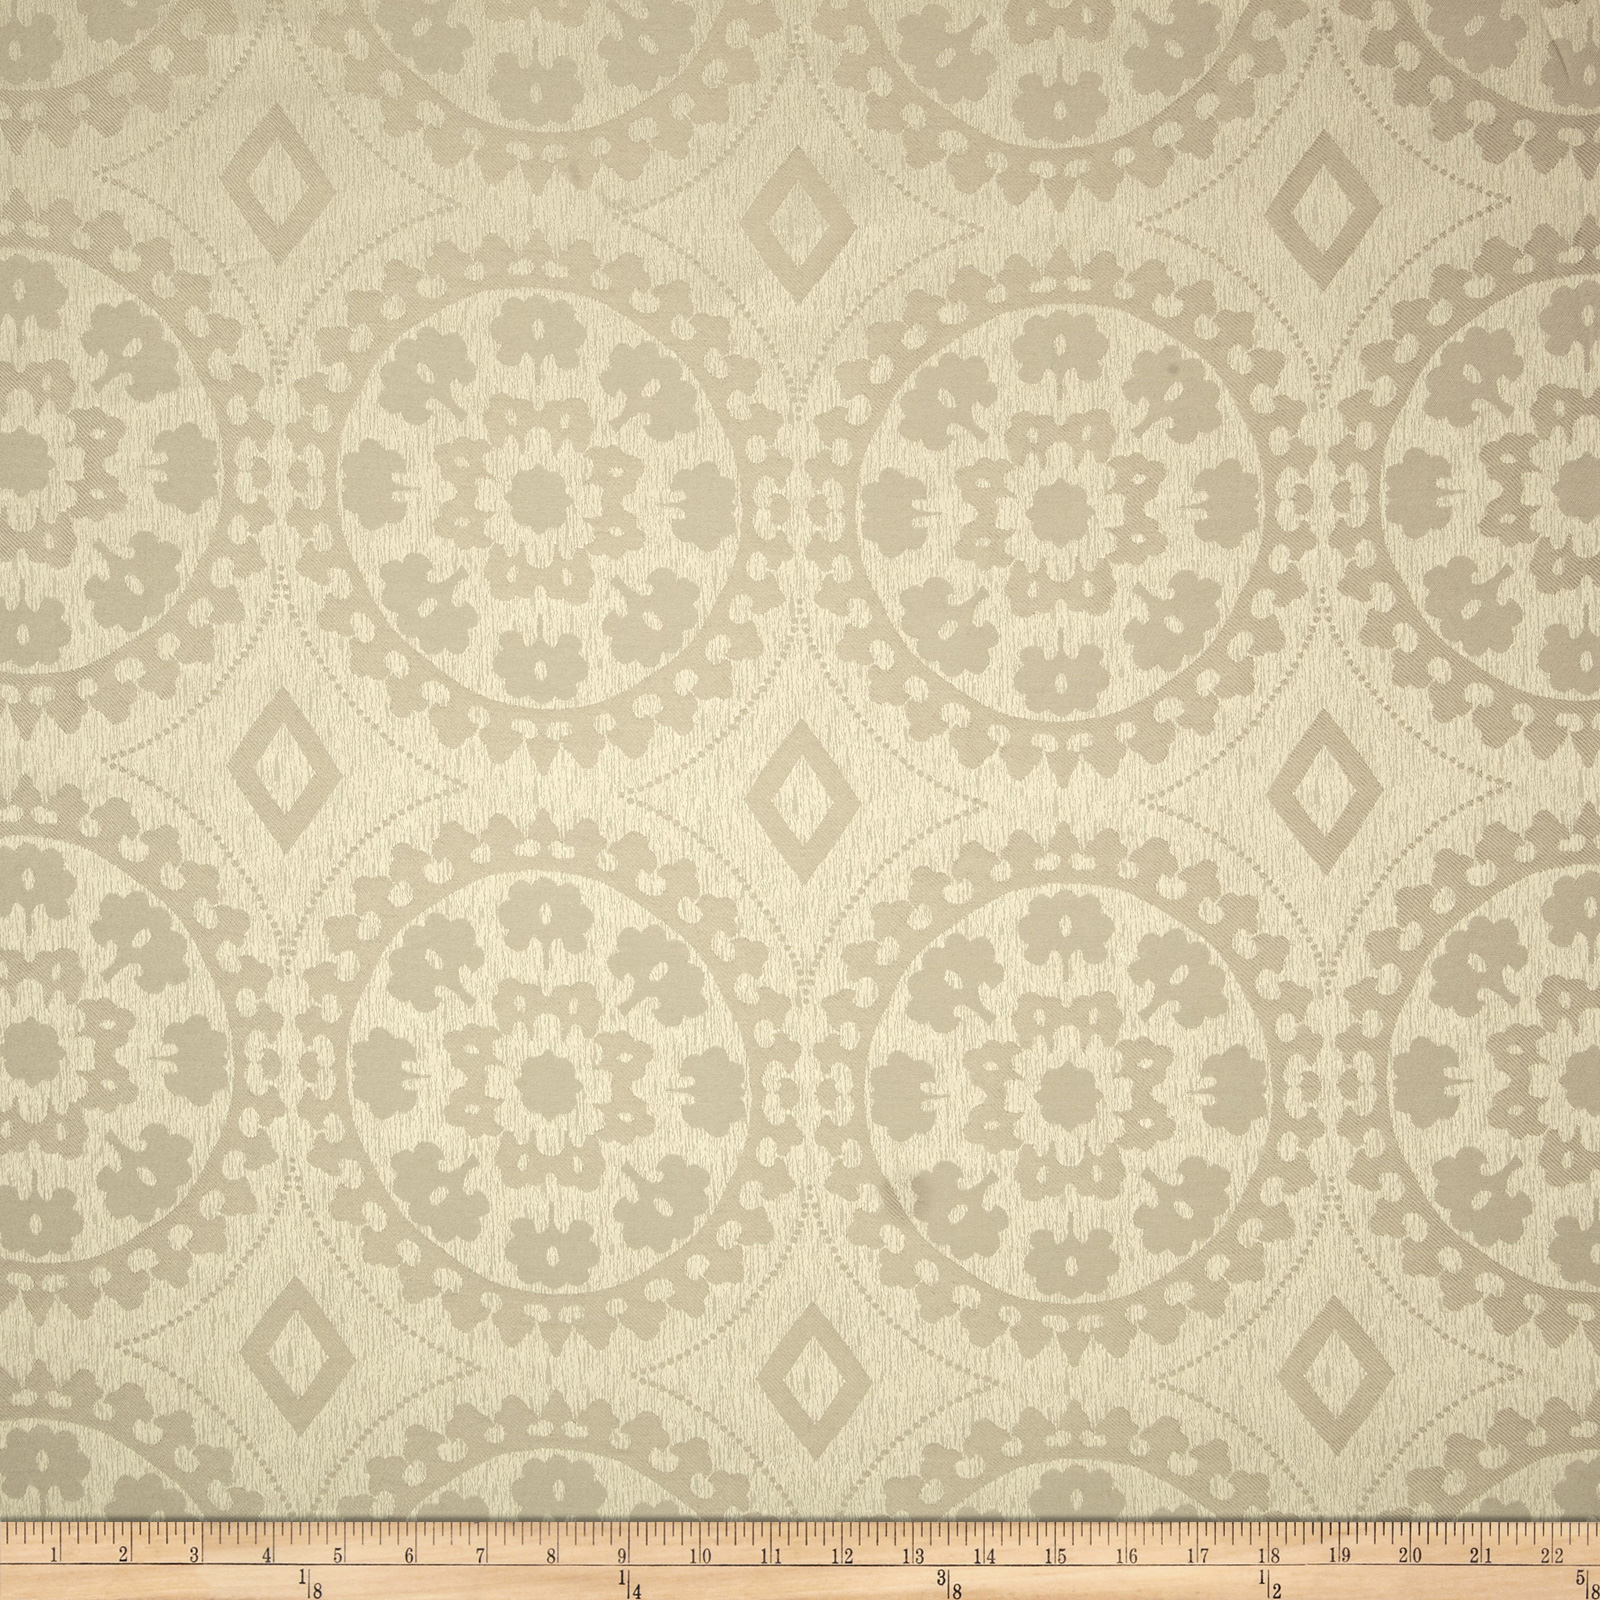 Eroica Venetian Jacquard Taupe Fabric by Eroica in USA